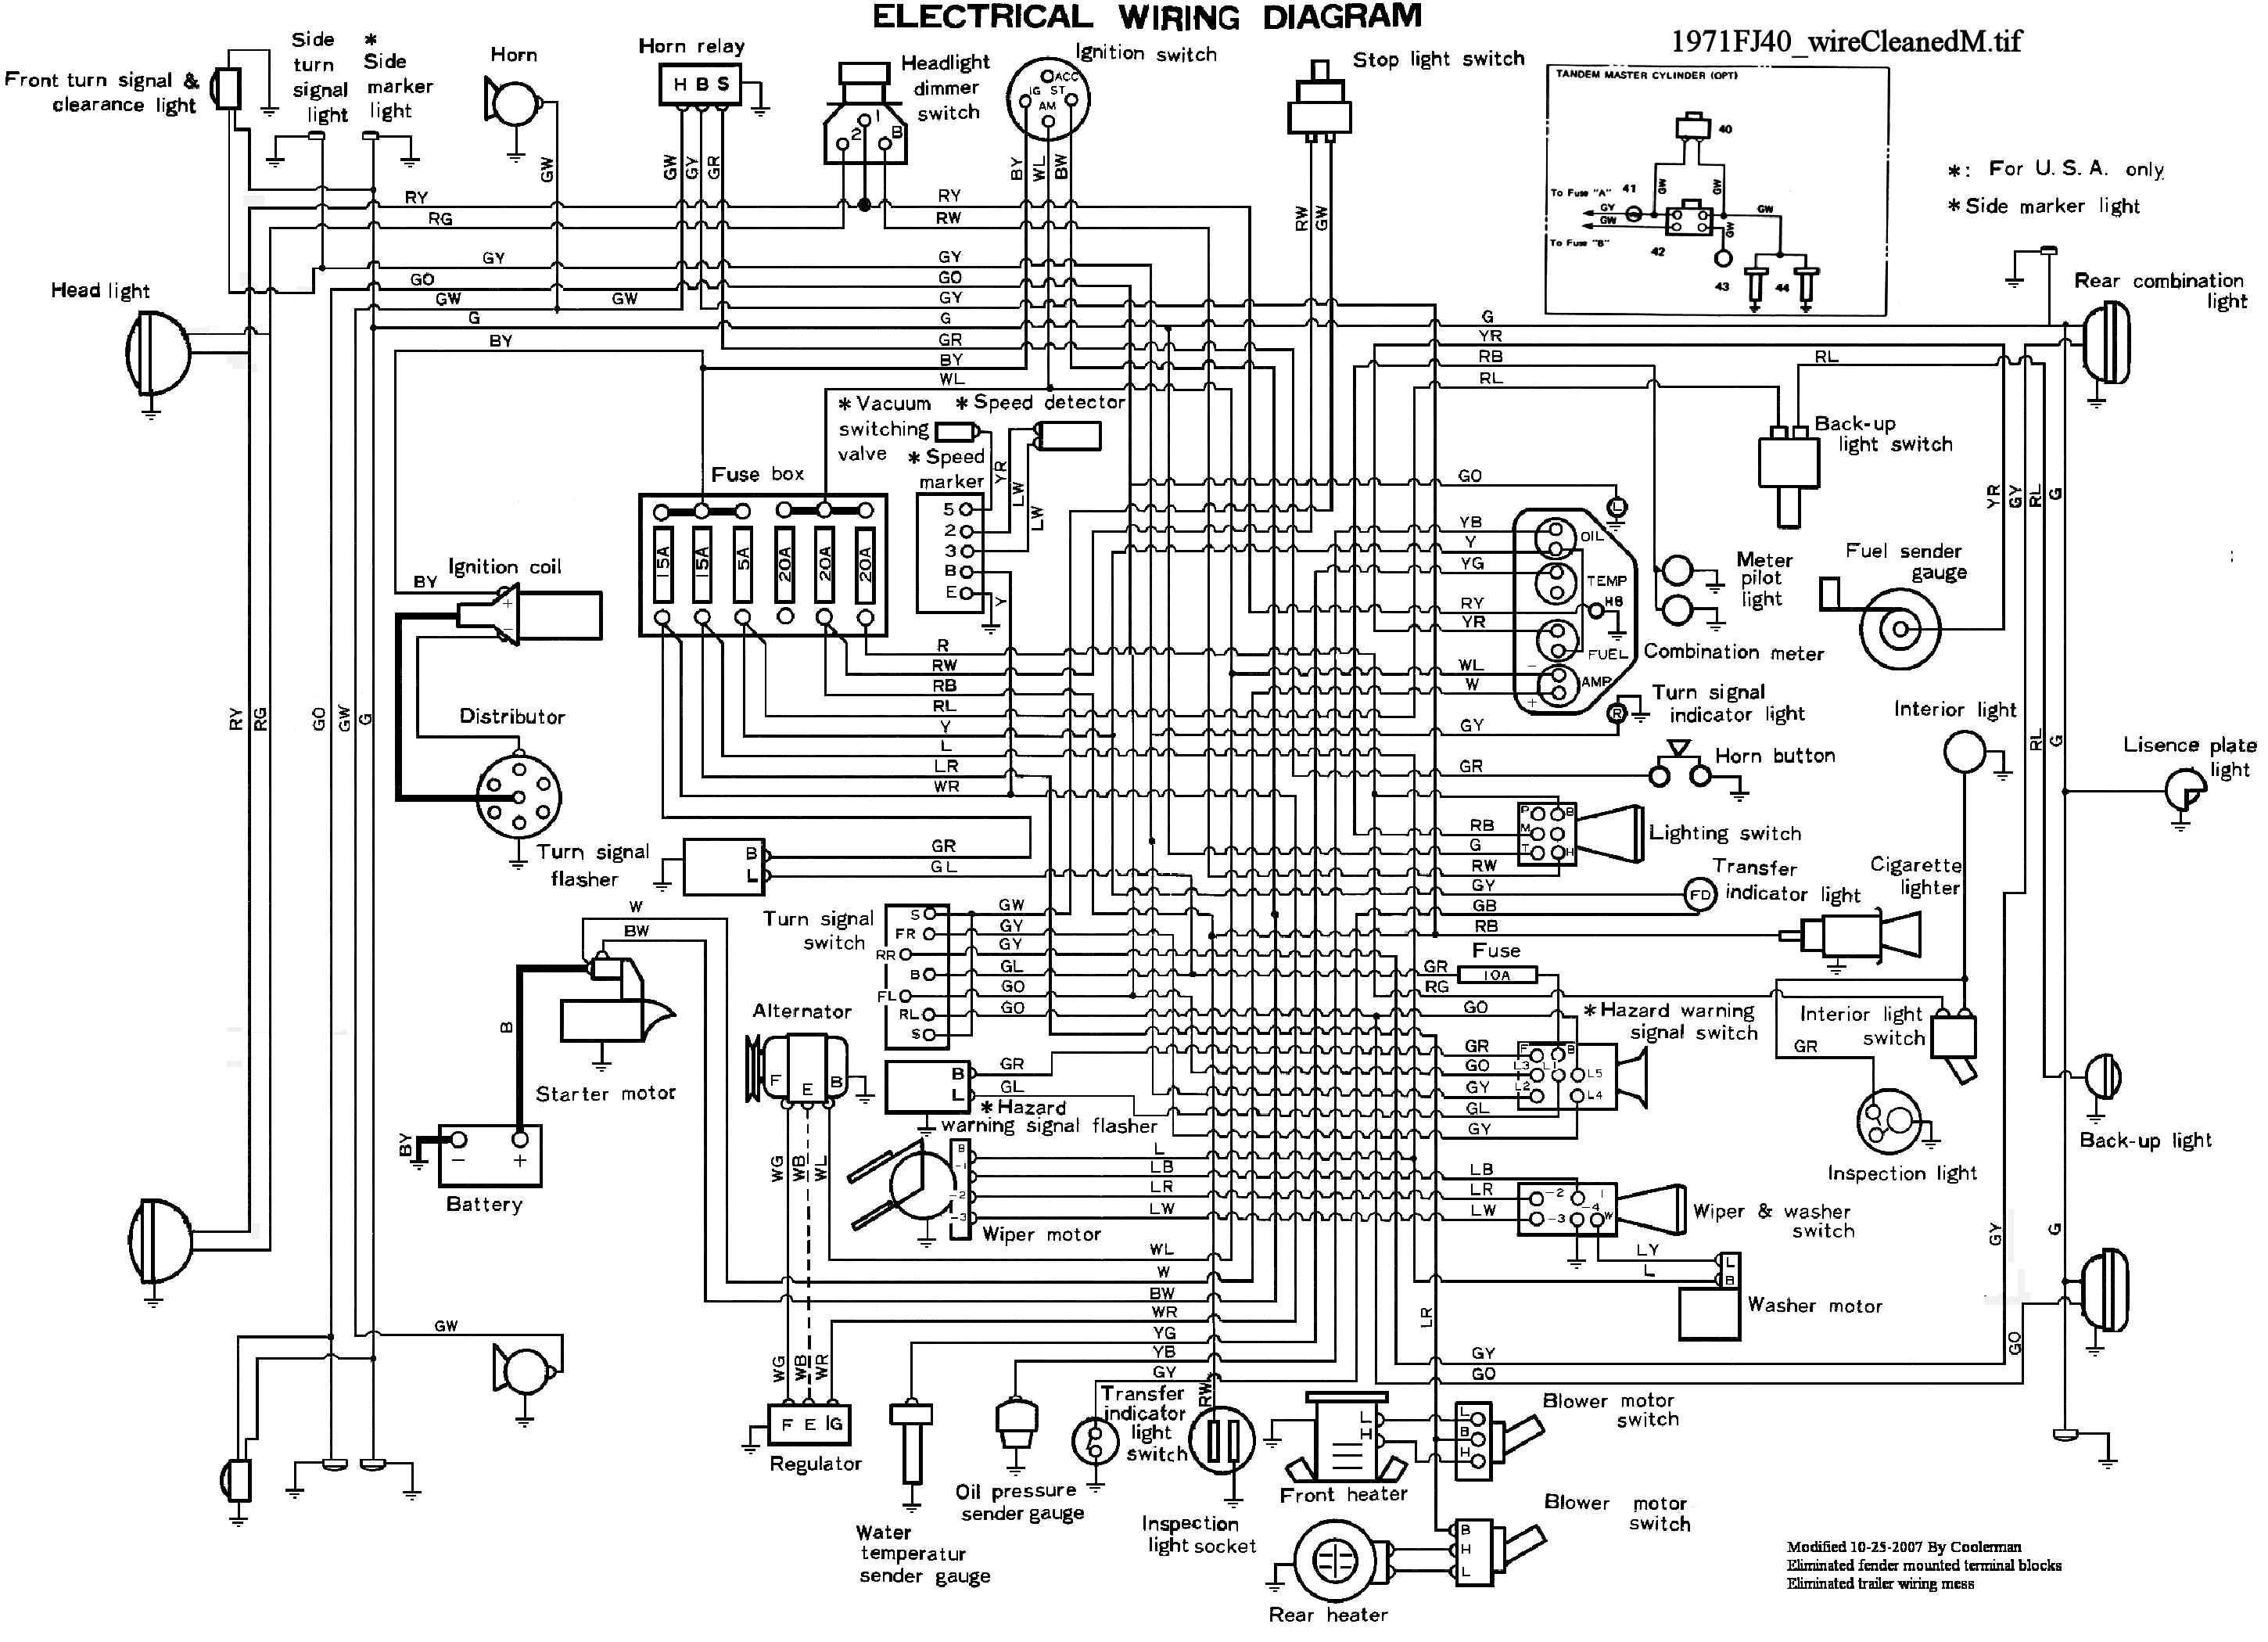 71fj40_wireCleanedM vdj79 wiring diagram outlet wiring \u2022 wiring diagrams j squared co  at virtualis.co